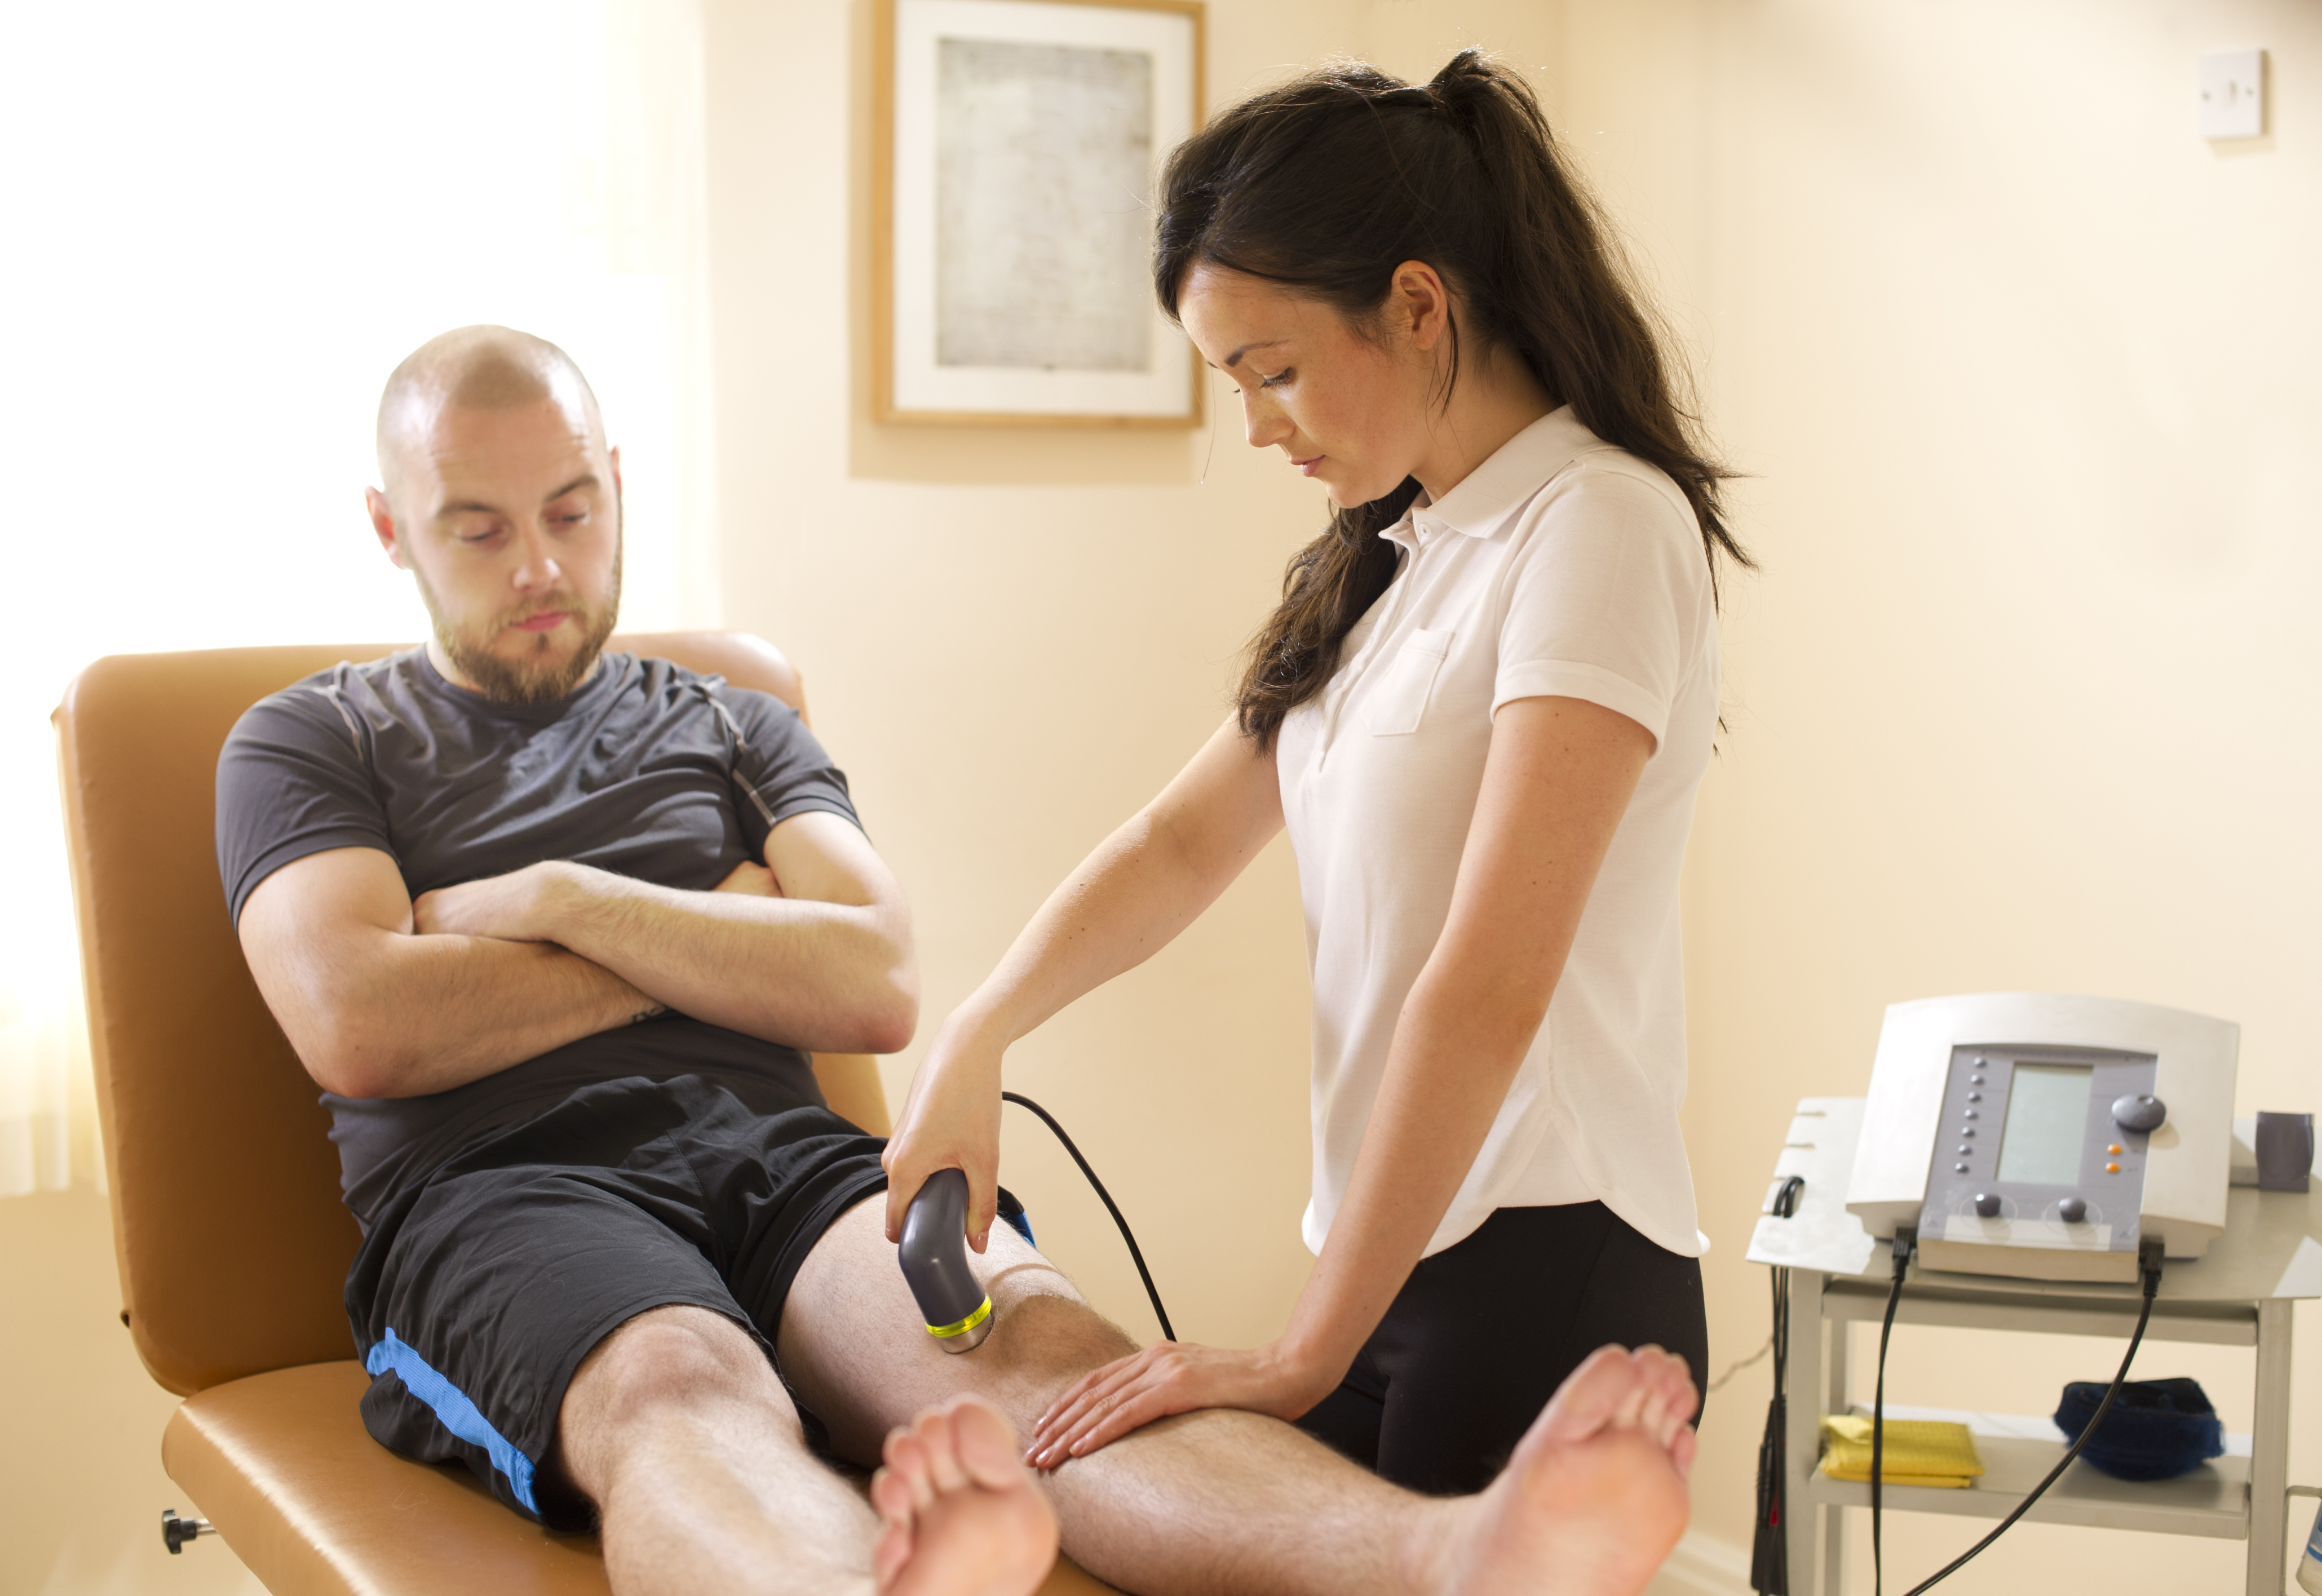 physical therapists can perform muscoloskeletal ultrasounds